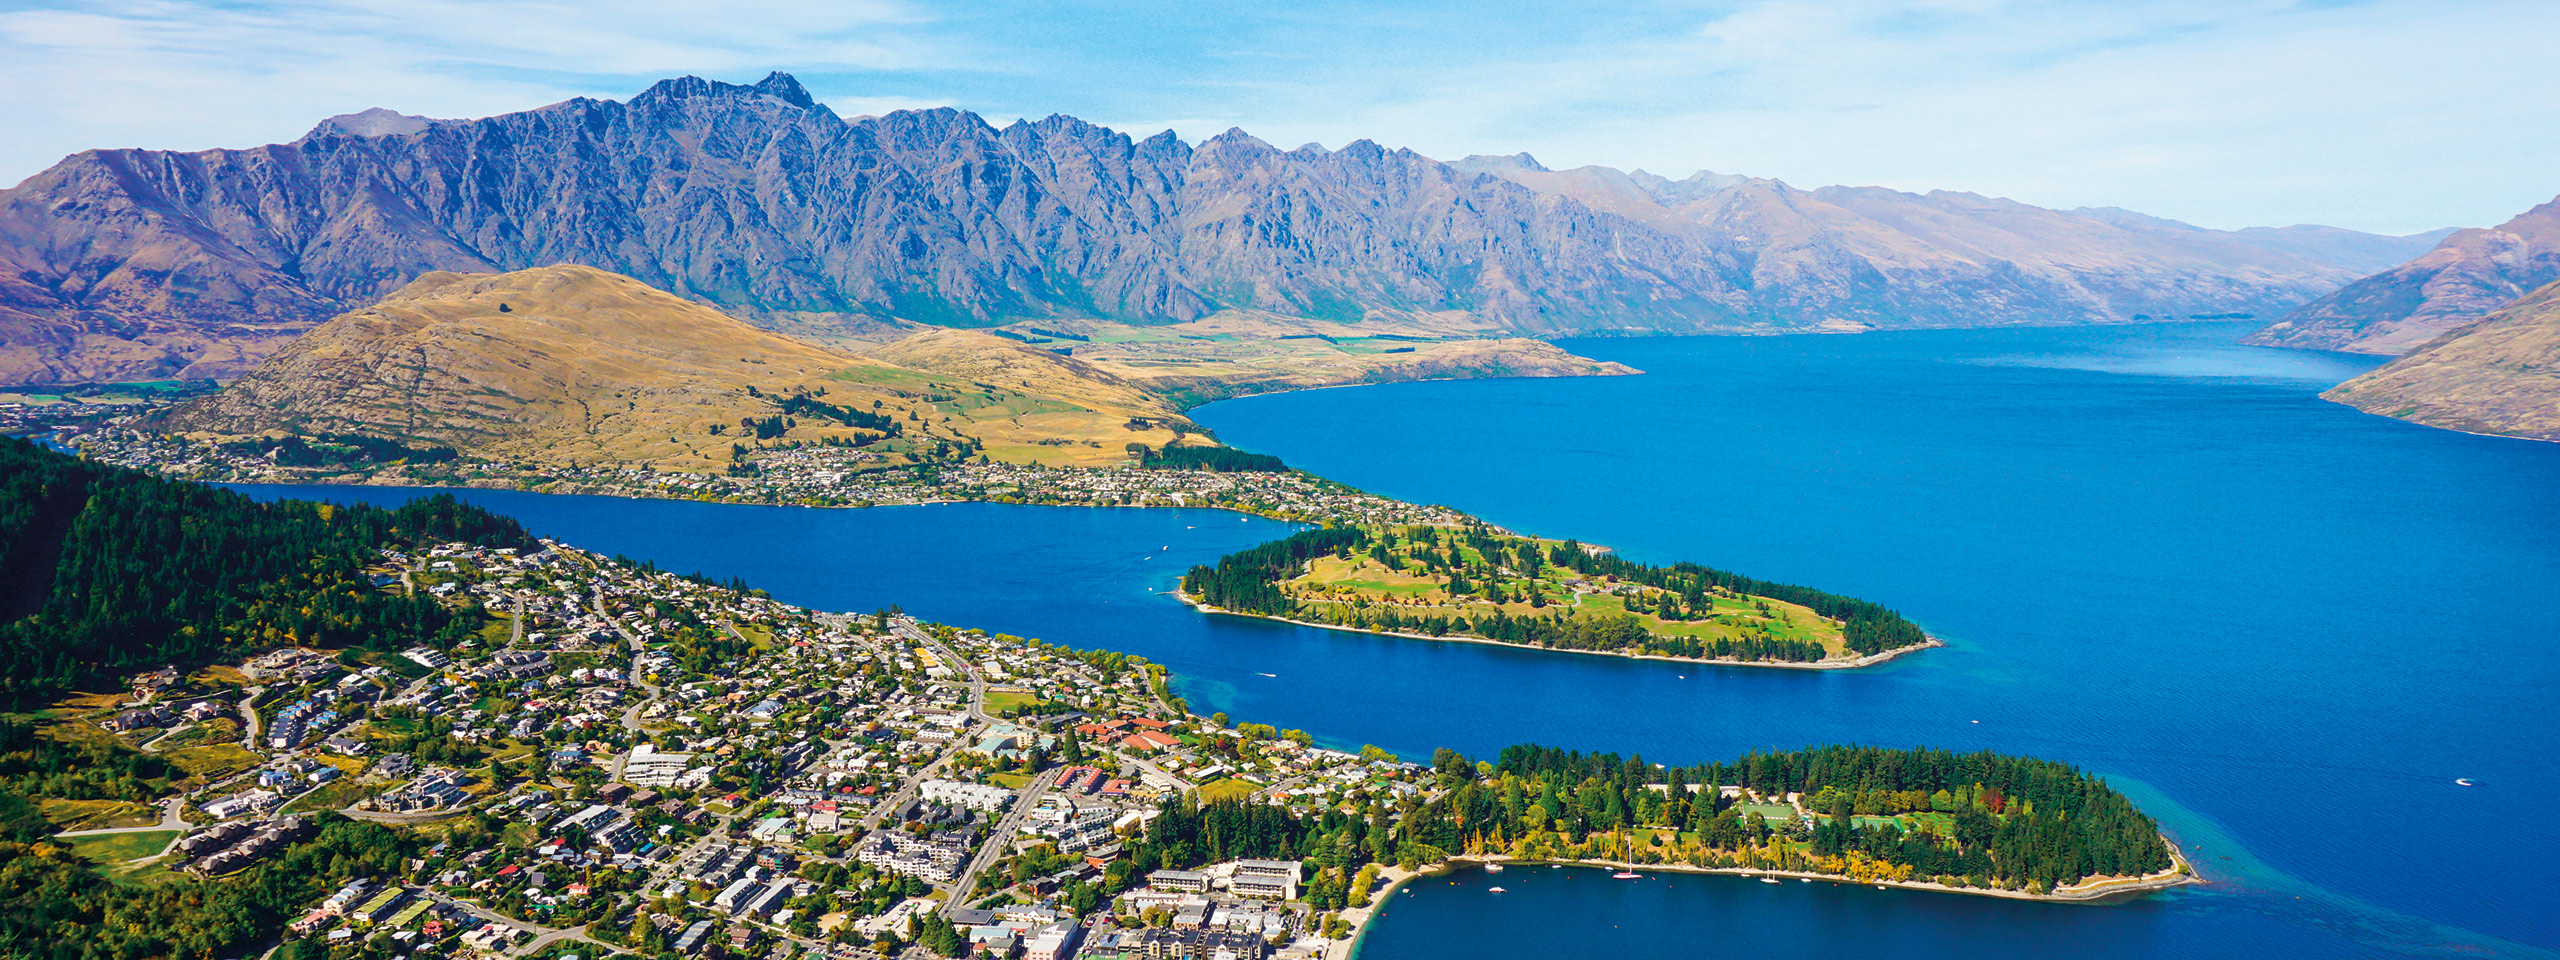 Visit the wonders of New Zealand